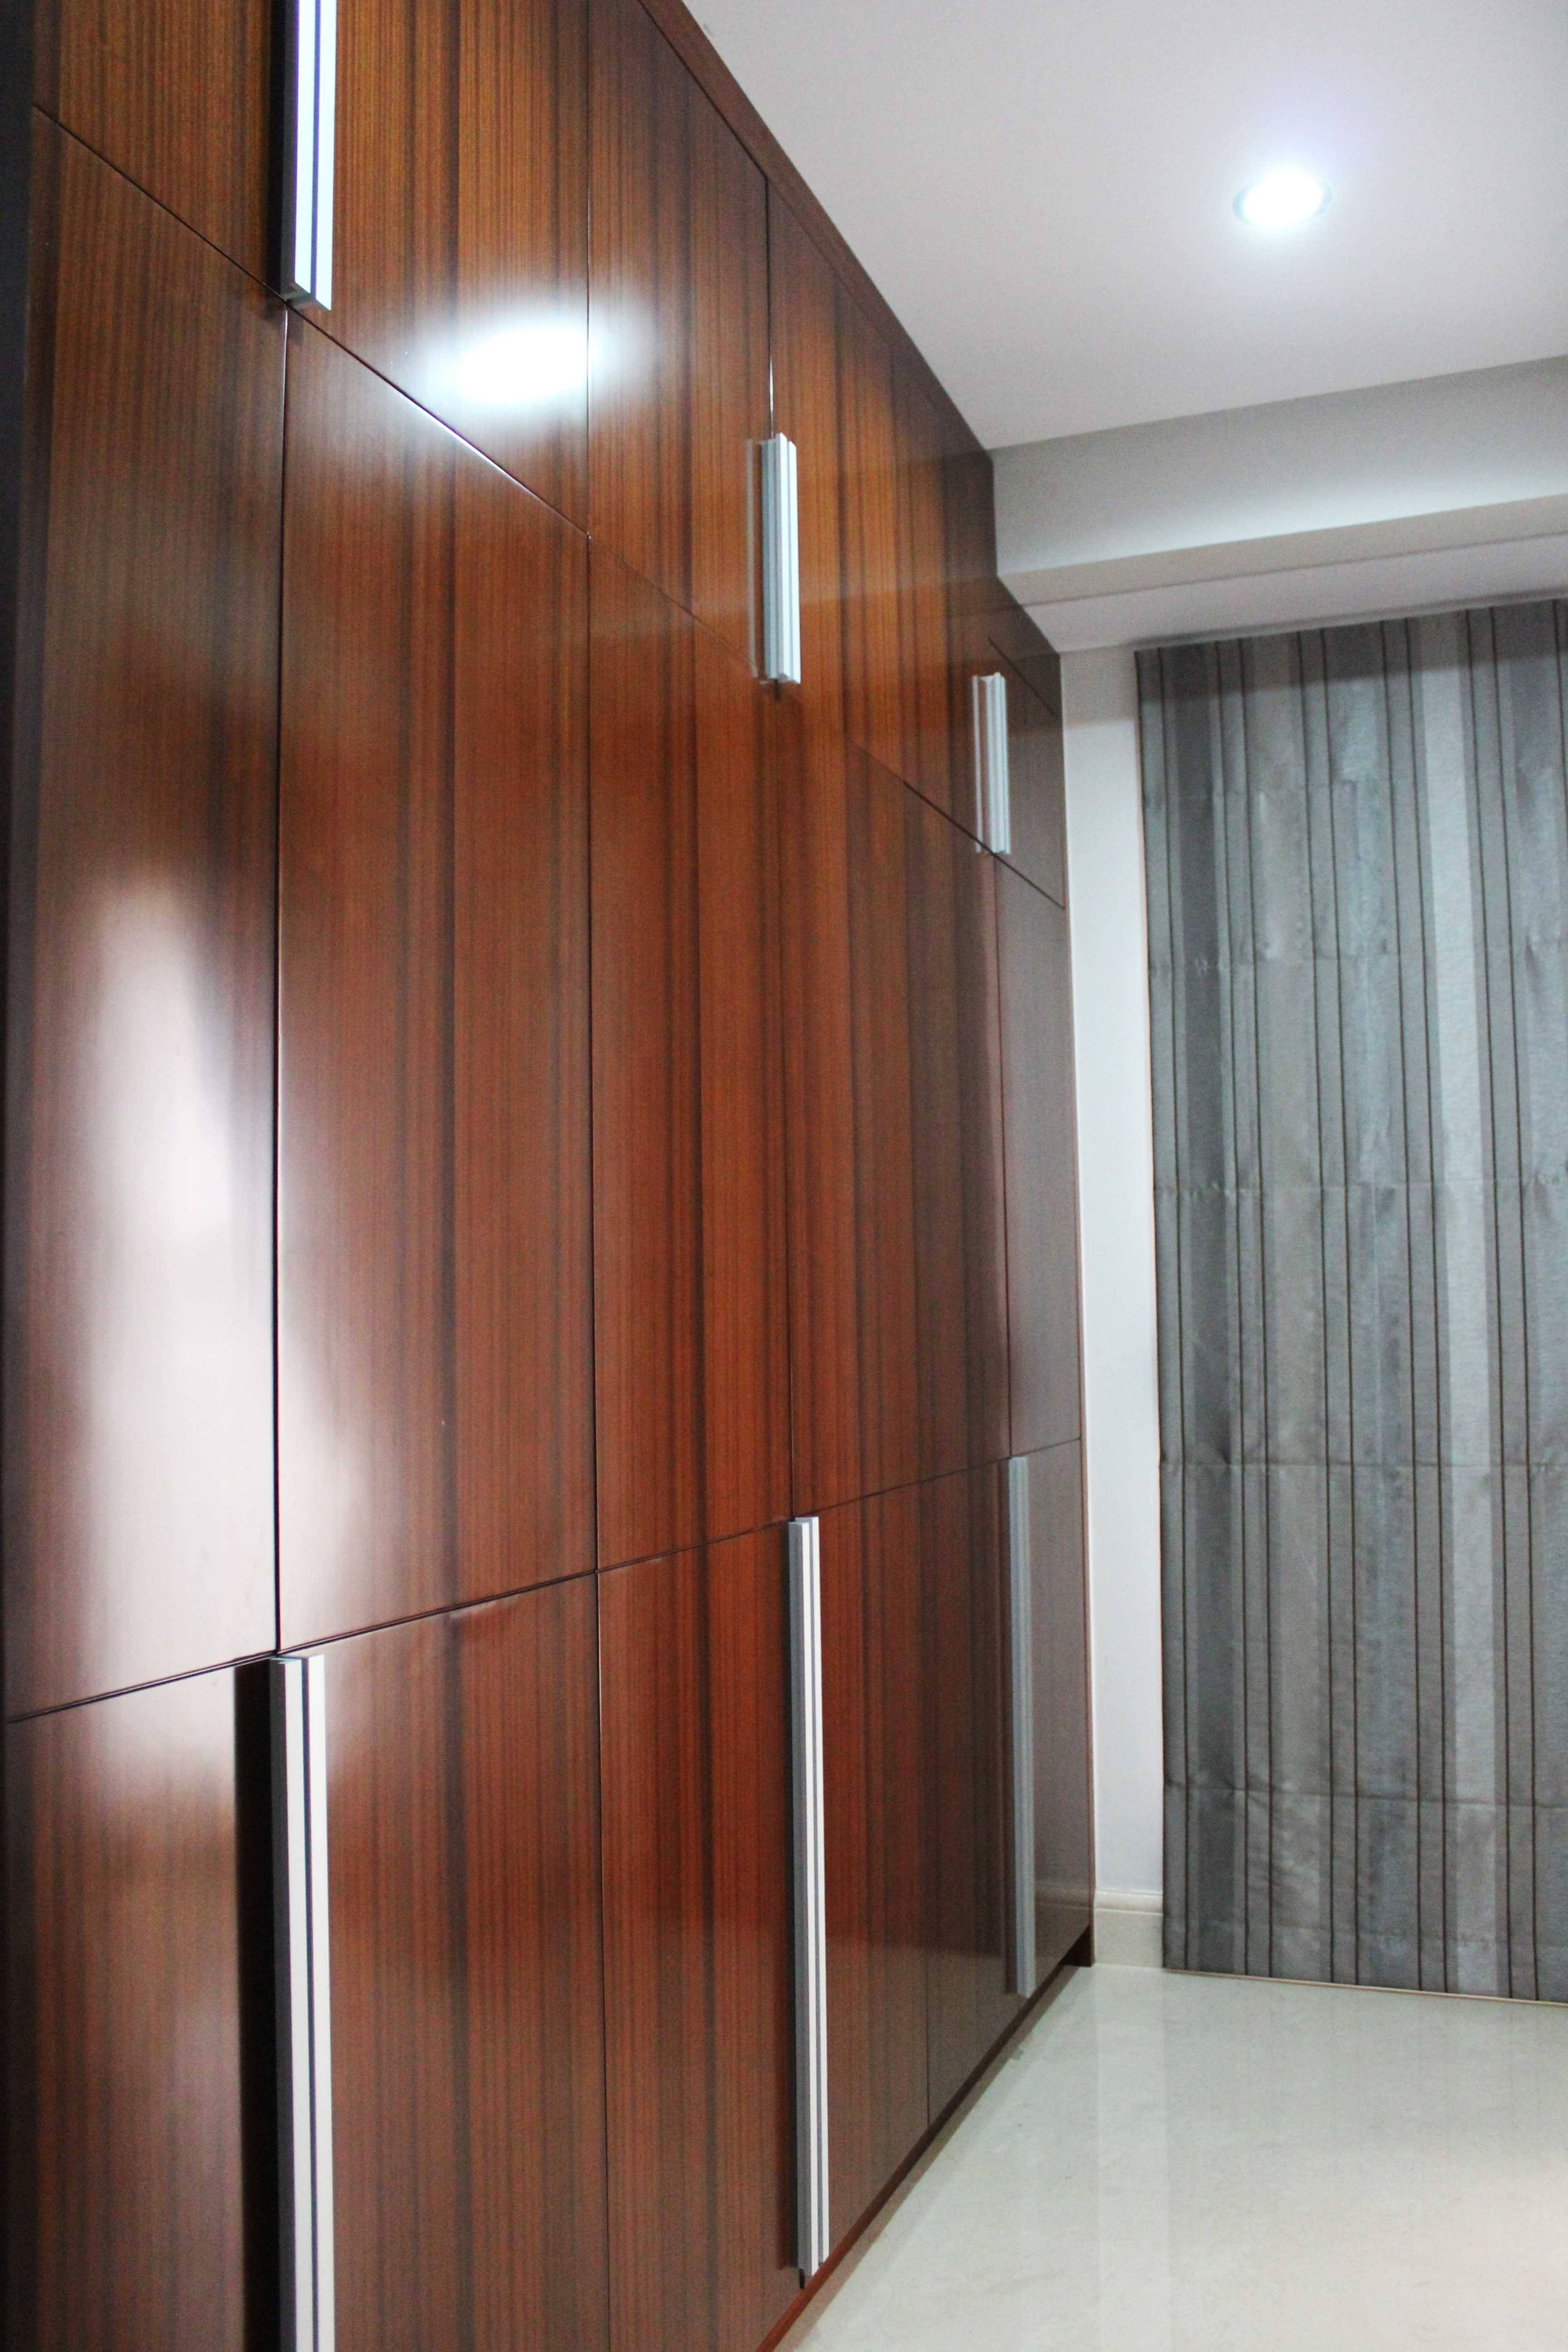 Bedroom Wardrobes Home Tender Smart Stunning Idea Wardrobe ~ Idolza throughout Bedroom Wardrobes (Image 6 of 15)